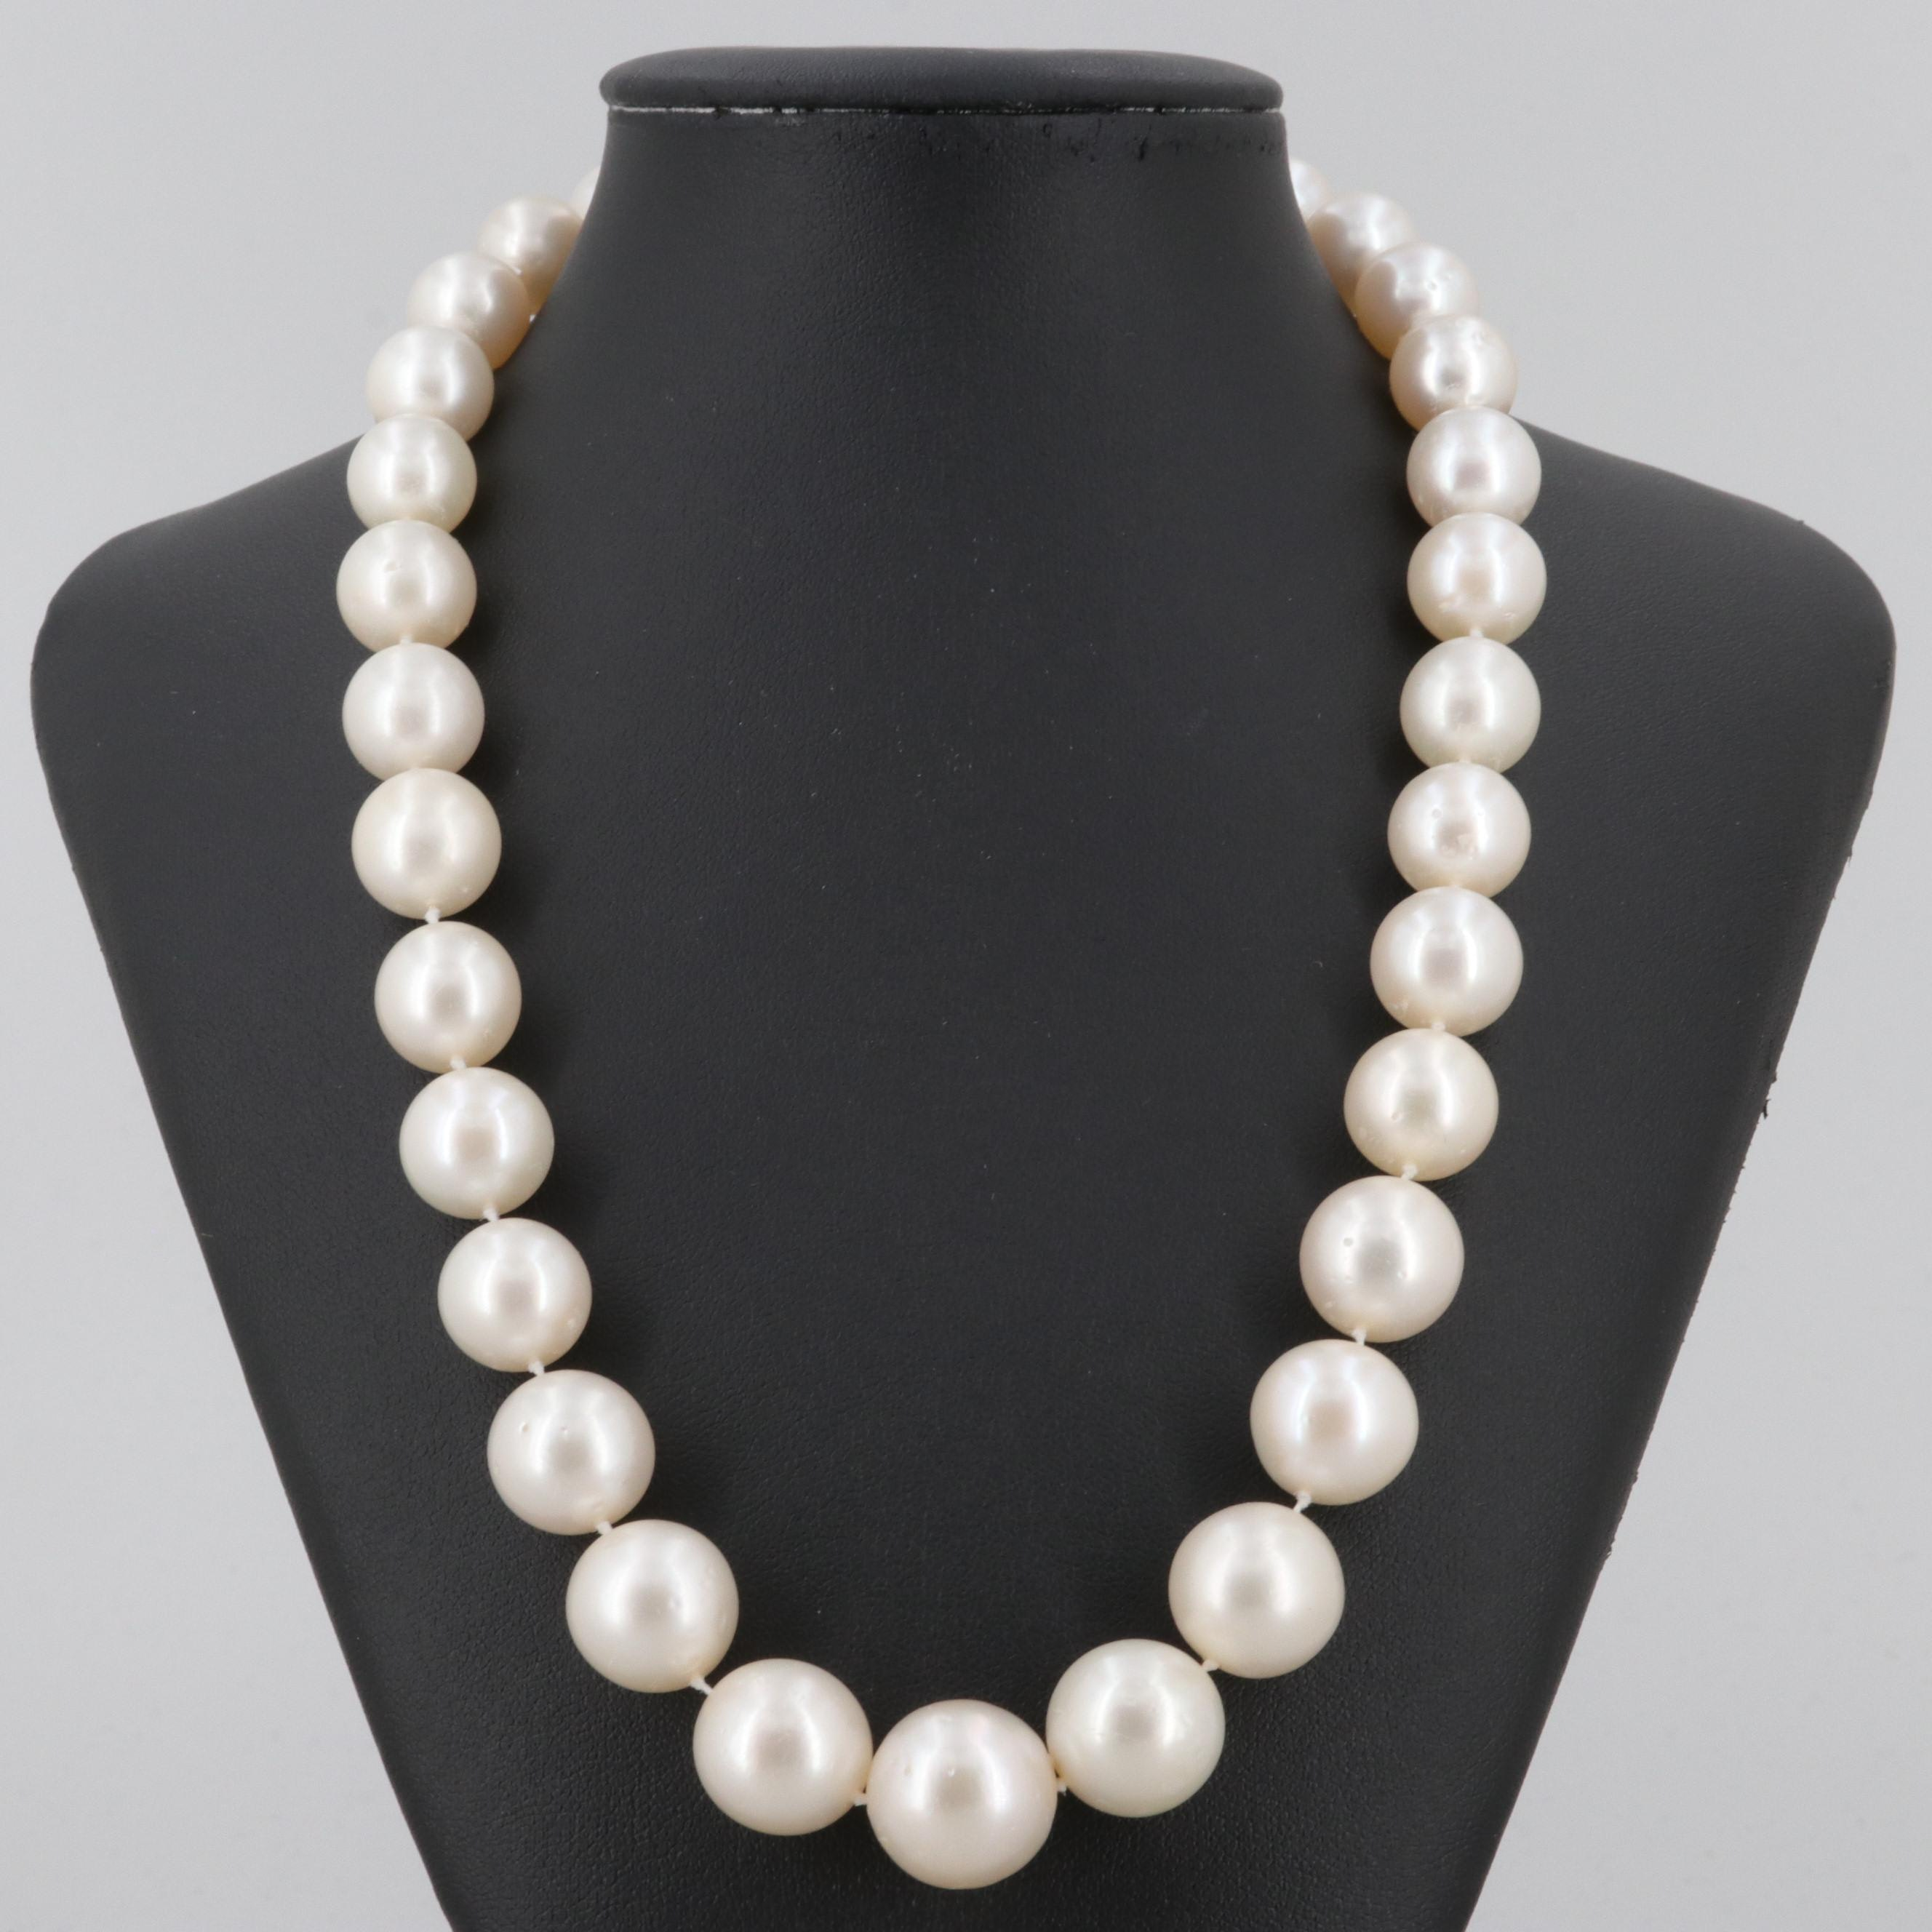 18K Yellow Gold Graduating (10.98-15.77mm) Cultured Pearl Necklace with Diamonds